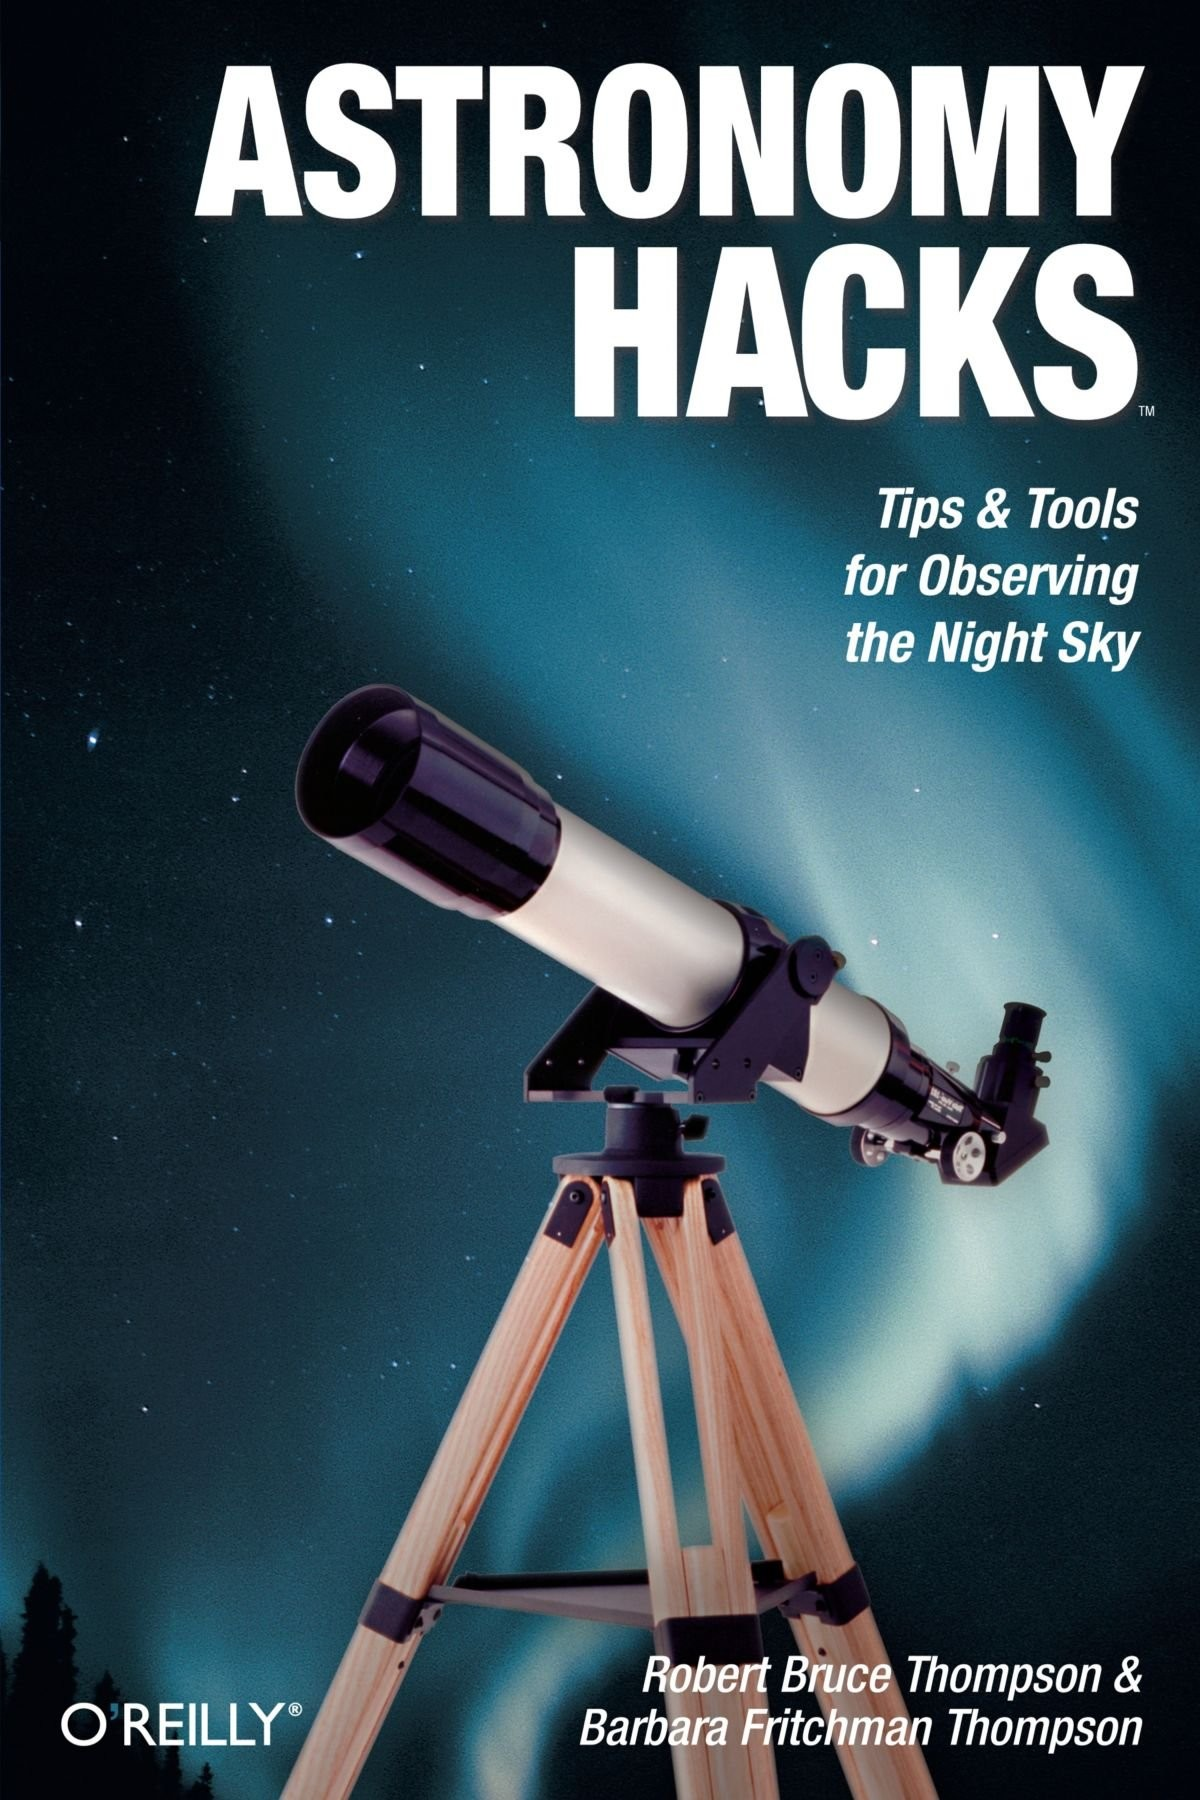 Astronomy Hacks Tips and Tools for Observing the Night Sky by Robert Bruce Thomson & Barbara Fritchman Thomson